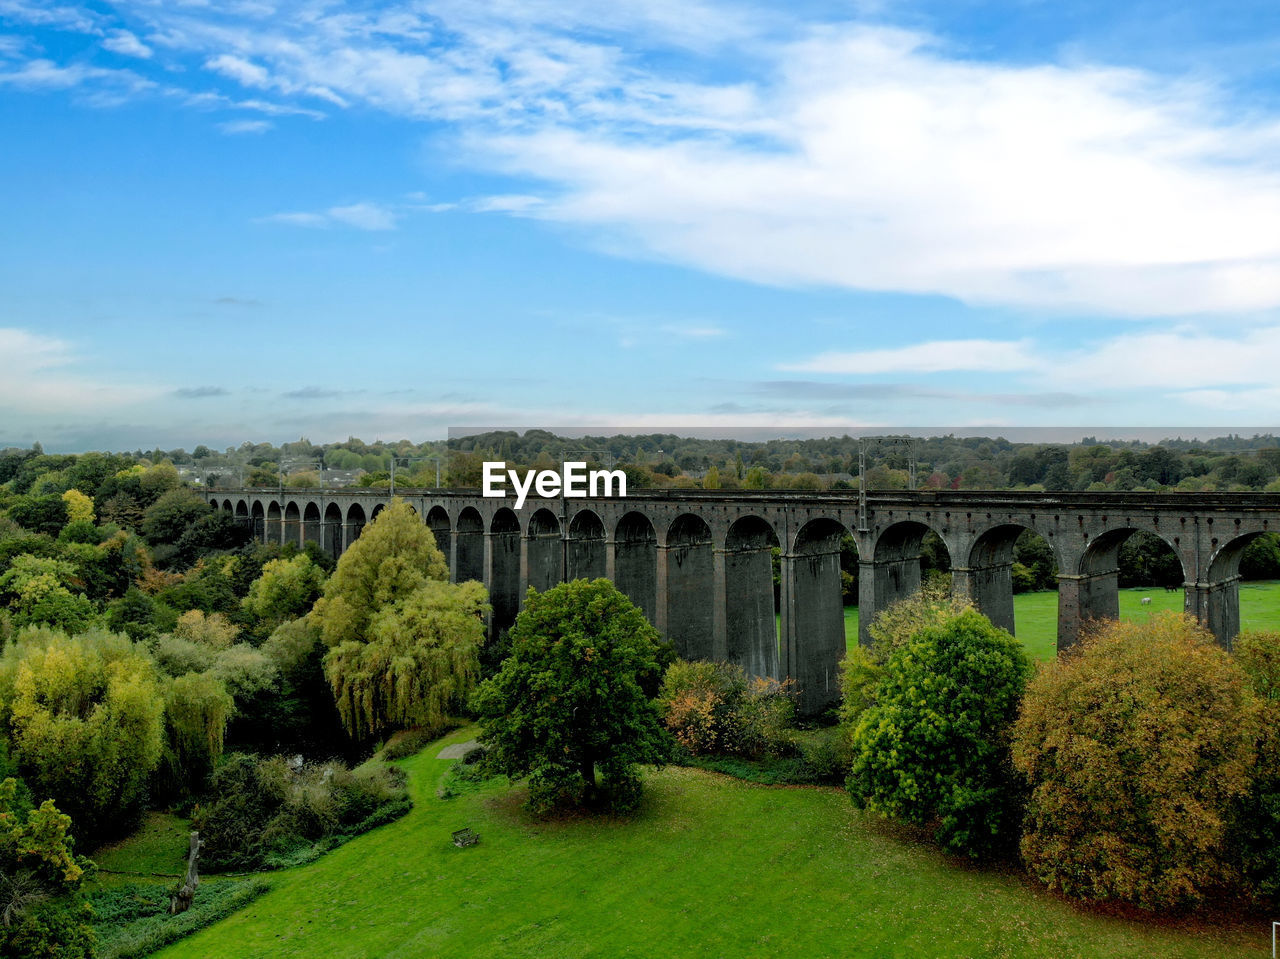 sky, cloud - sky, architecture, plant, built structure, nature, bridge, connection, bridge - man made structure, tree, arch, no people, transportation, green color, grass, day, viaduct, arch bridge, growth, beauty in nature, outdoors, architectural column